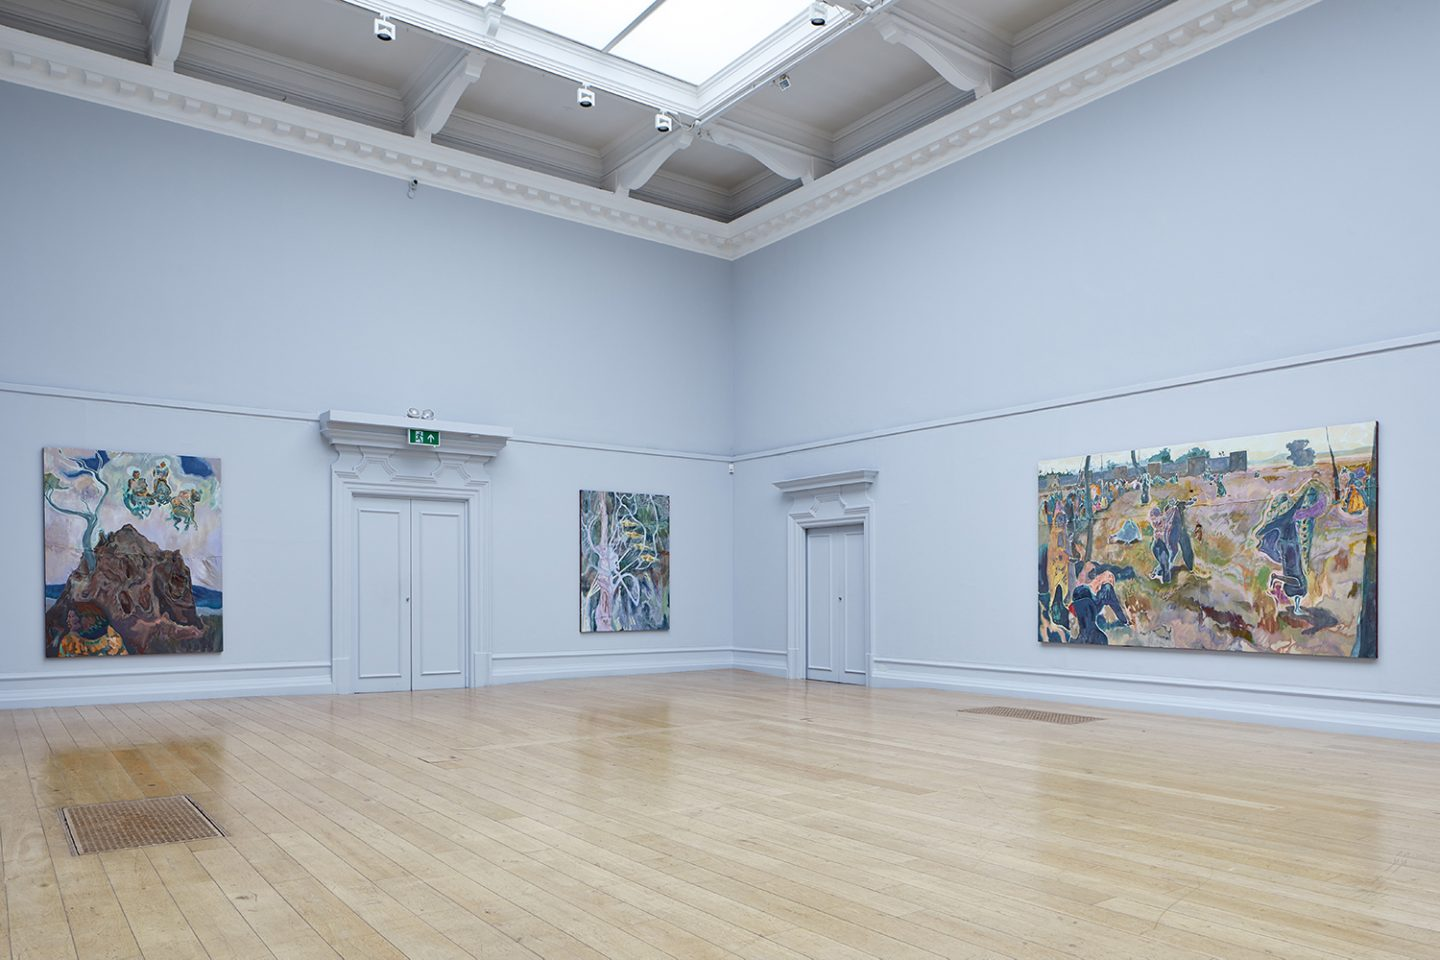 Michael Armitage, The Chapel, installation view at the South London Gallery, 2017. Photo Andy Stagg